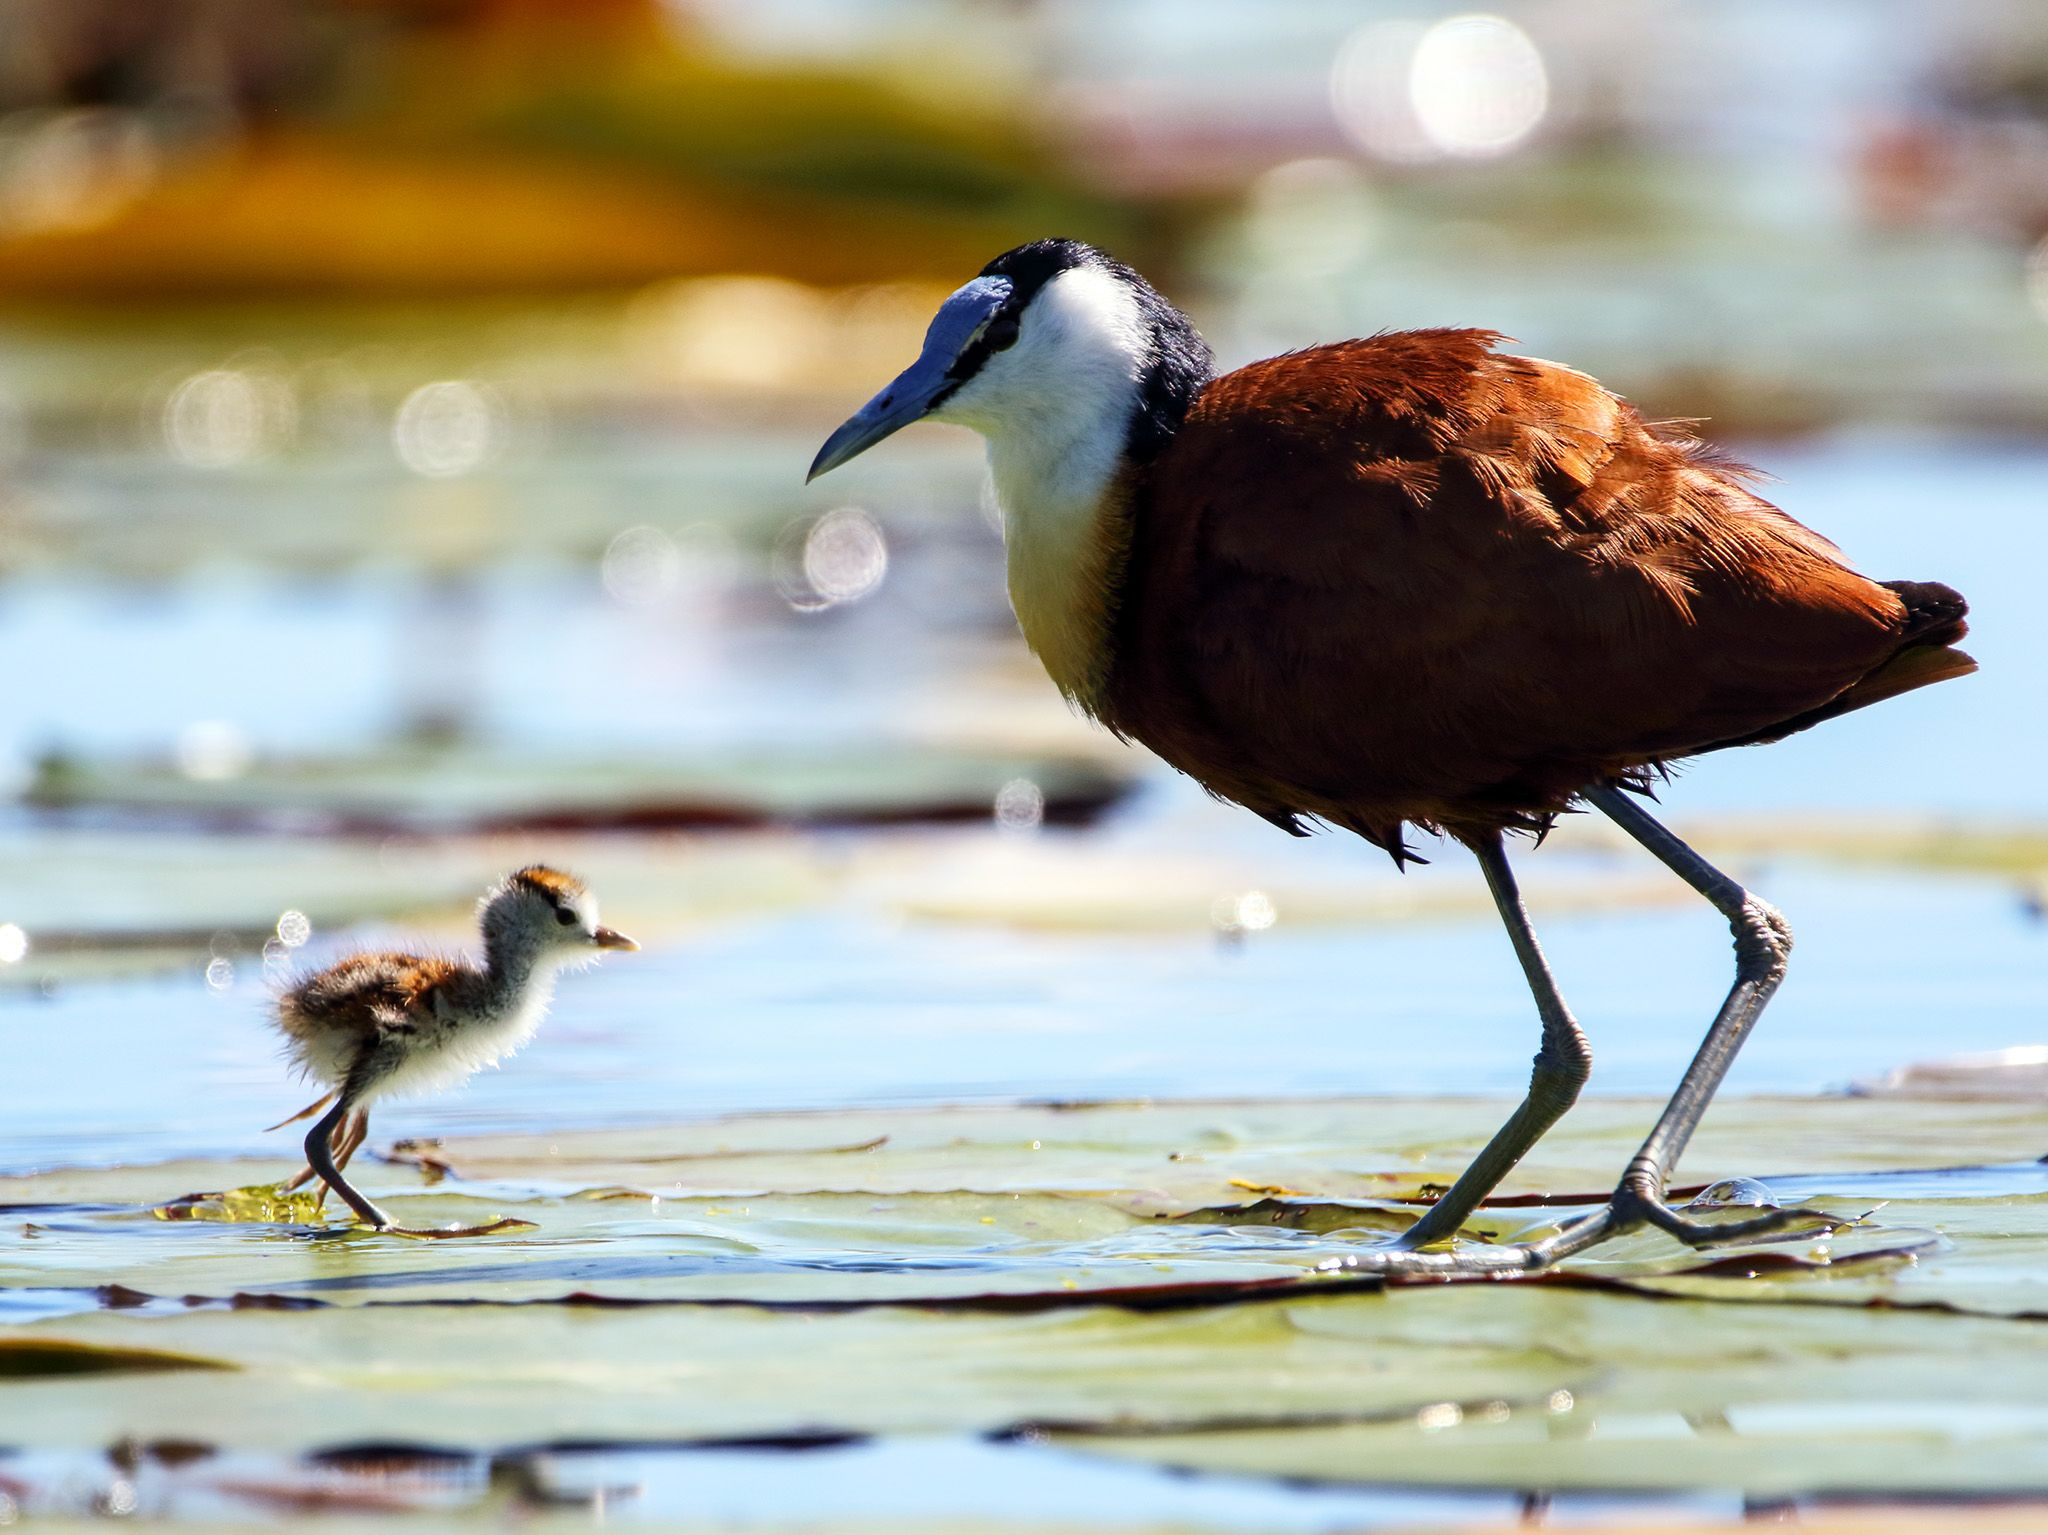 Botswana:  A male Jacana watches as its young chick crosses the mat of Lilly pads that cover one... [Foto del giorno - novembre 2018]